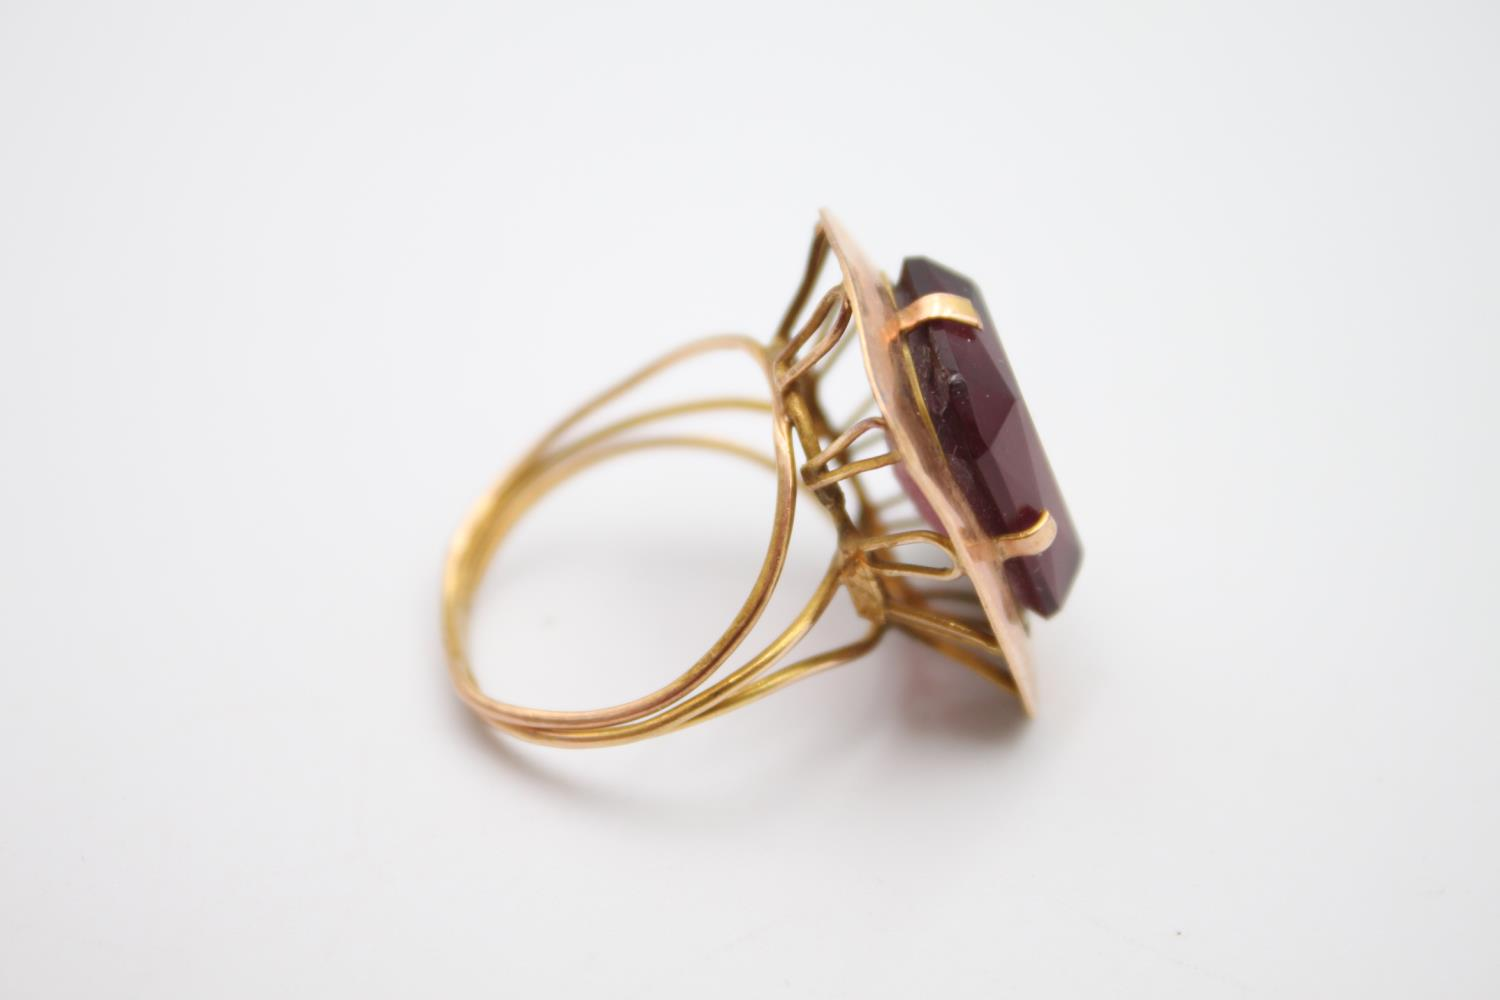 15ct rose gold amethyst paste cocktail ring 5.4g Size P - Image 4 of 5